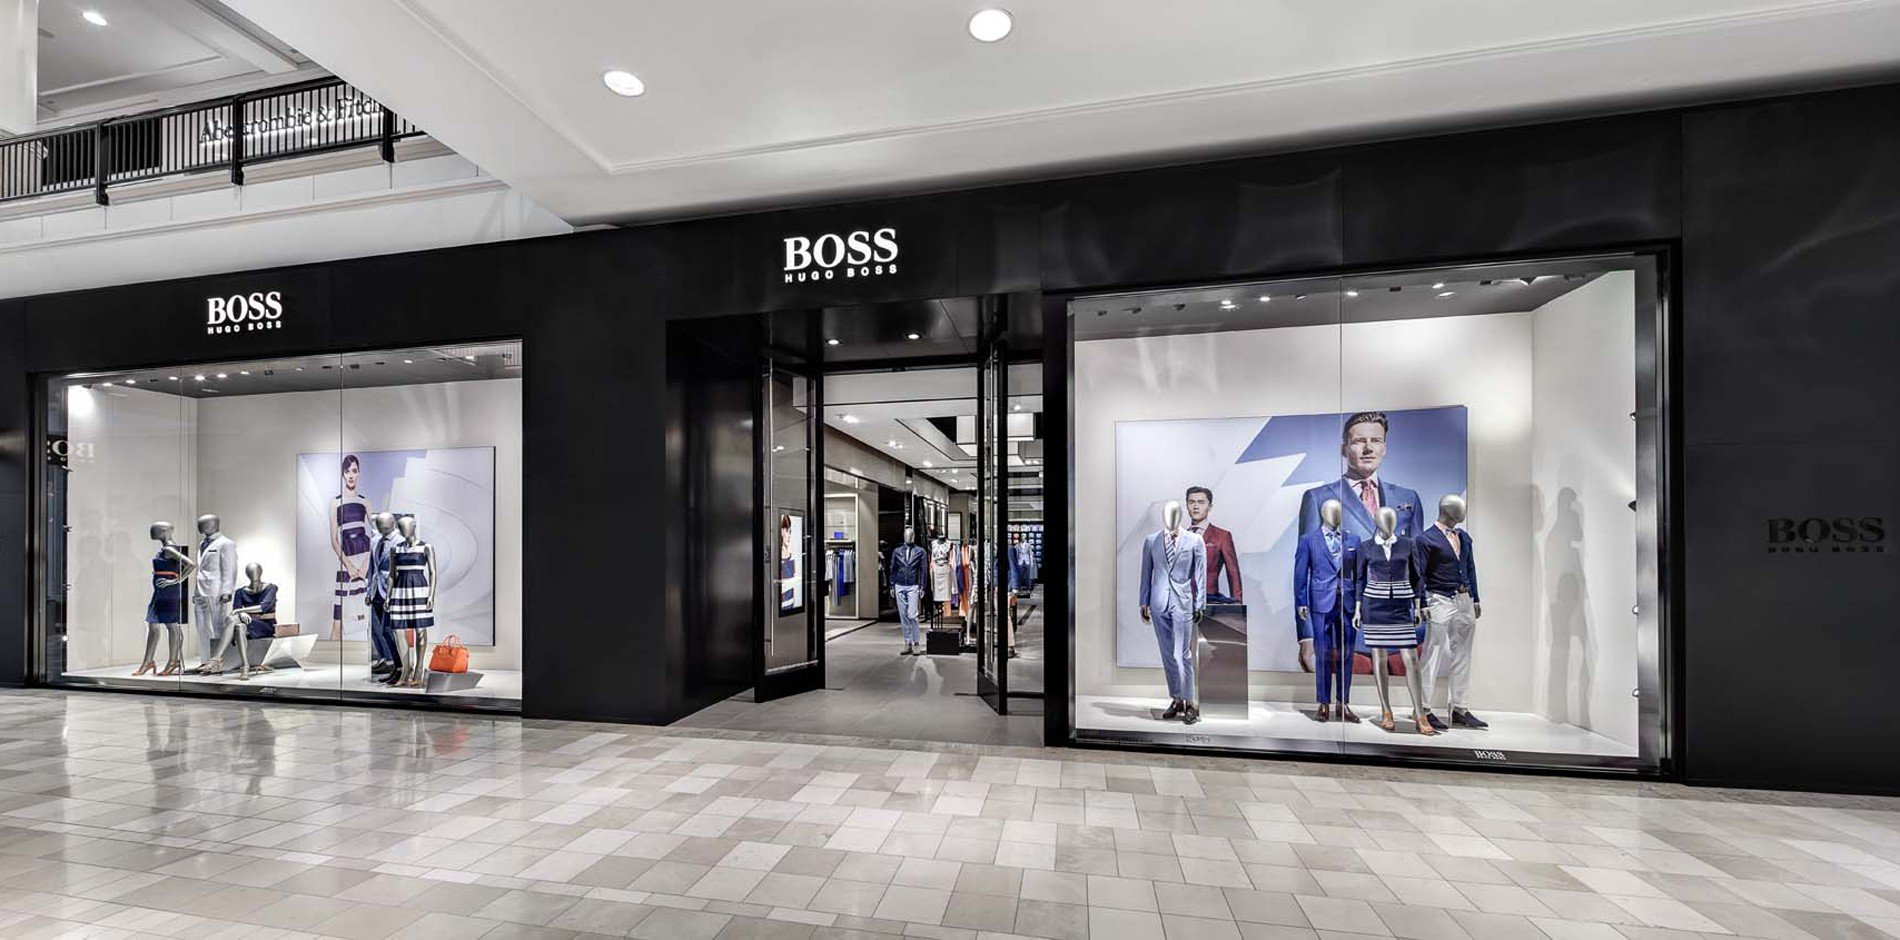 Hugo Boss sales increased online and in China